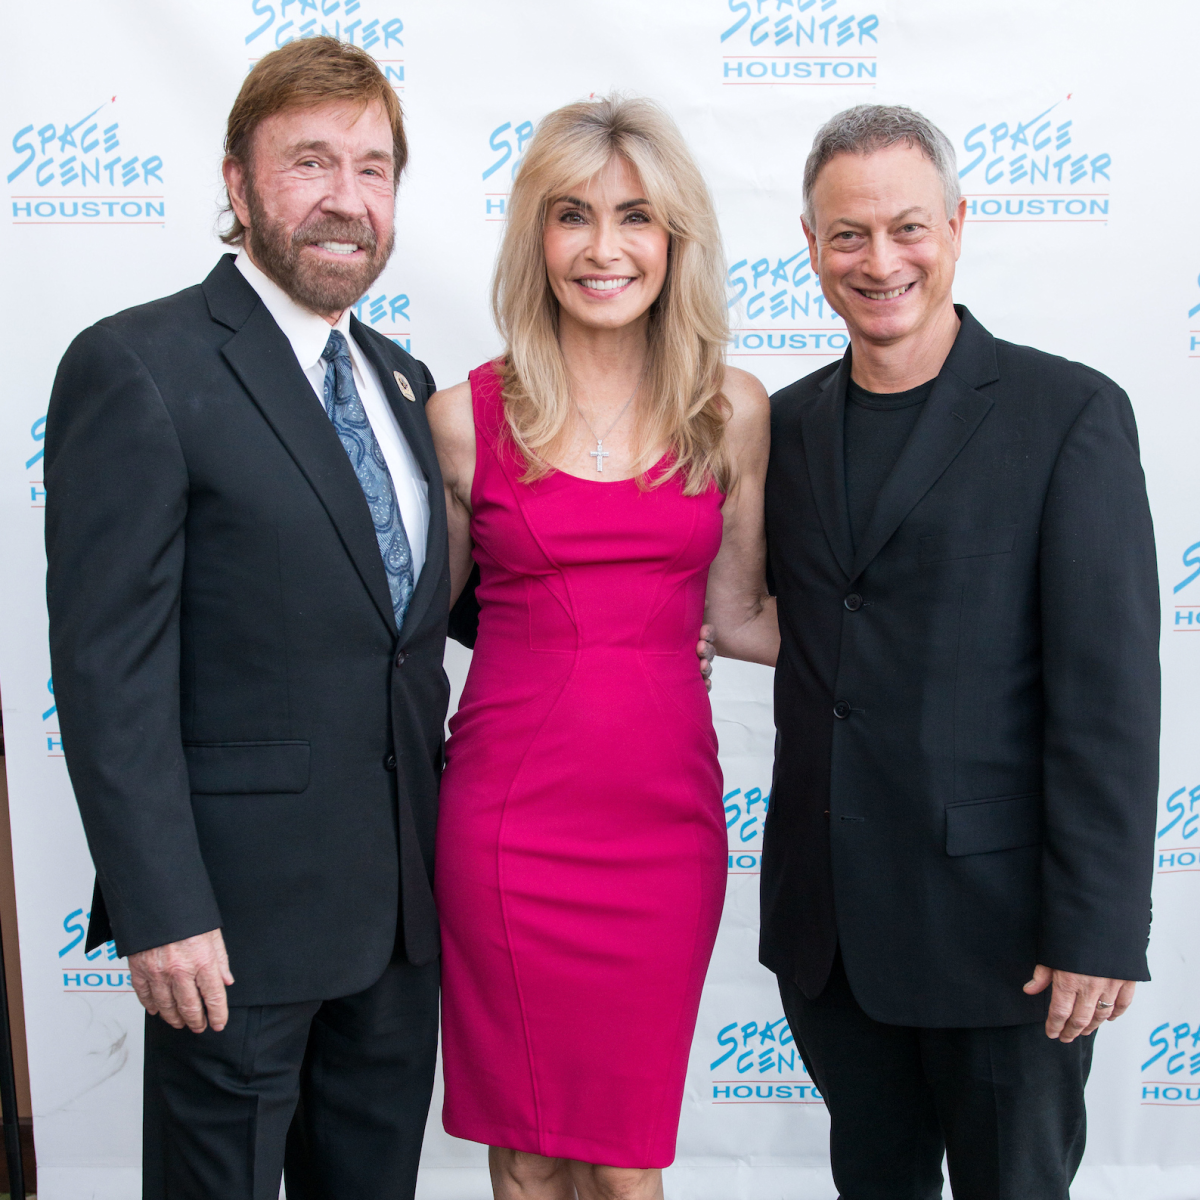 Houston, Space Center Houston Galaxy Gala, April 2017, Chuck Norris, Gena Norris, Gary Sinise